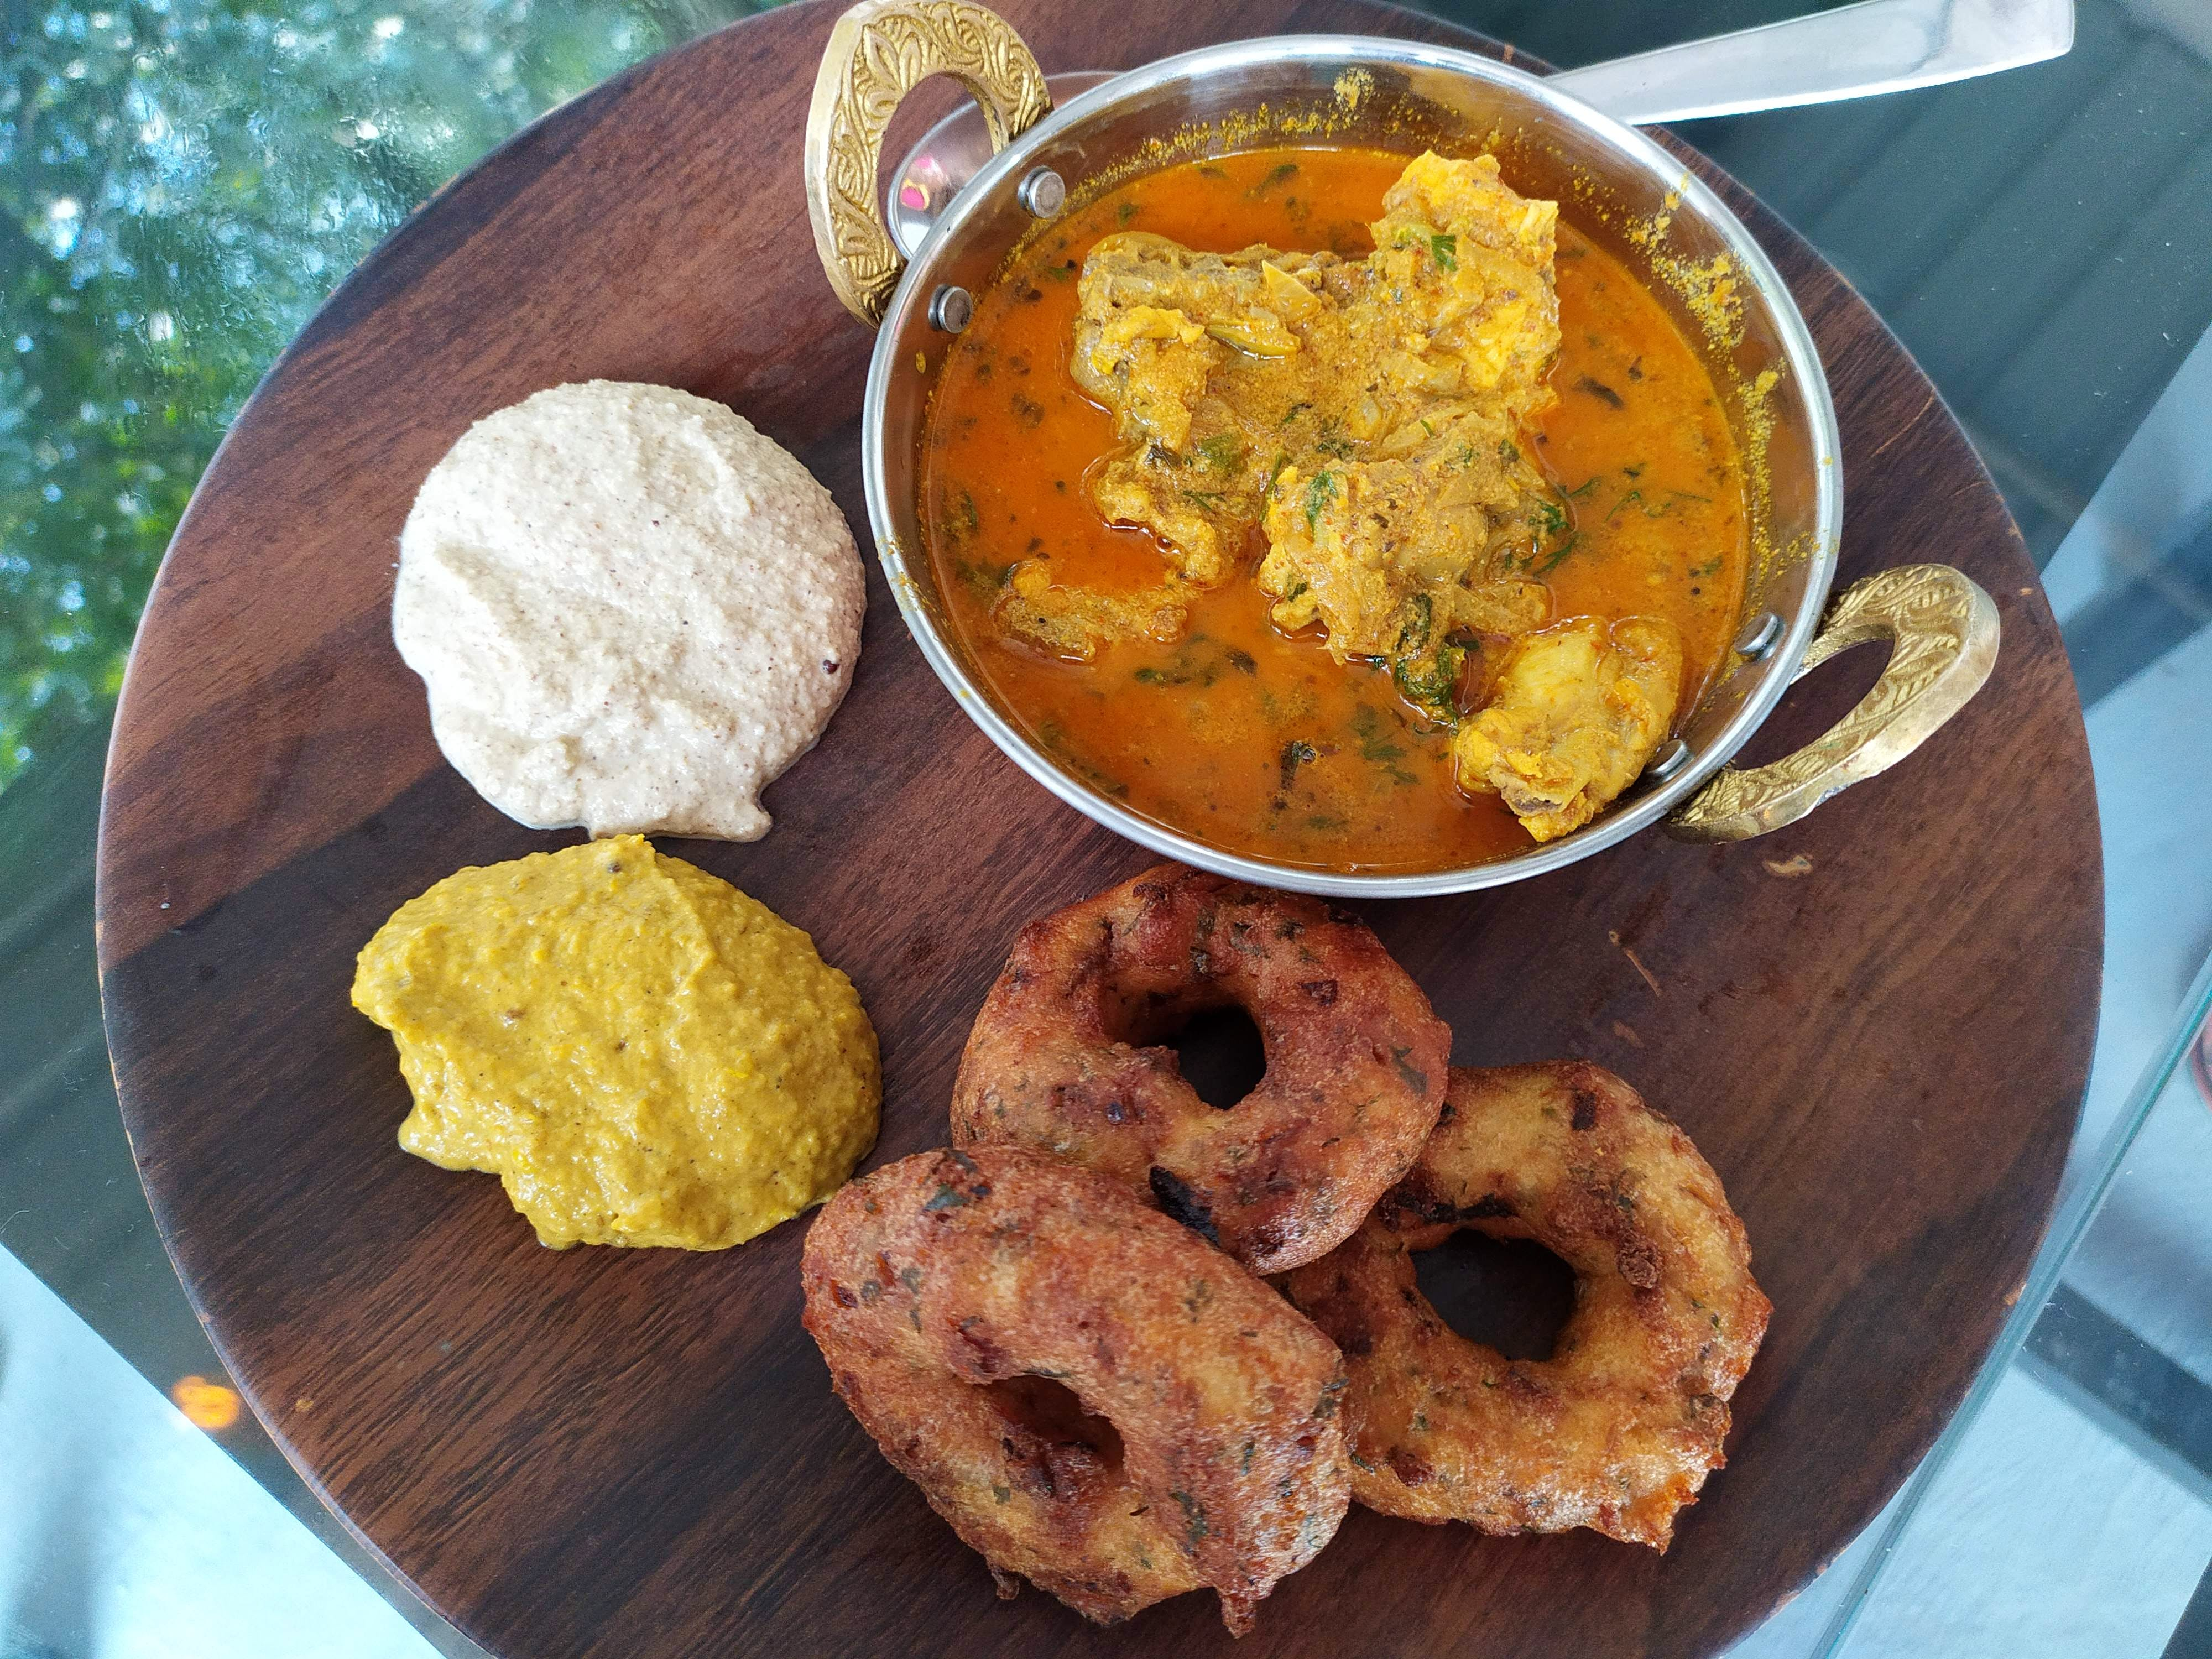 Craving Some Andhra Food In Goa? This Cute Eatery Is Just What You Need